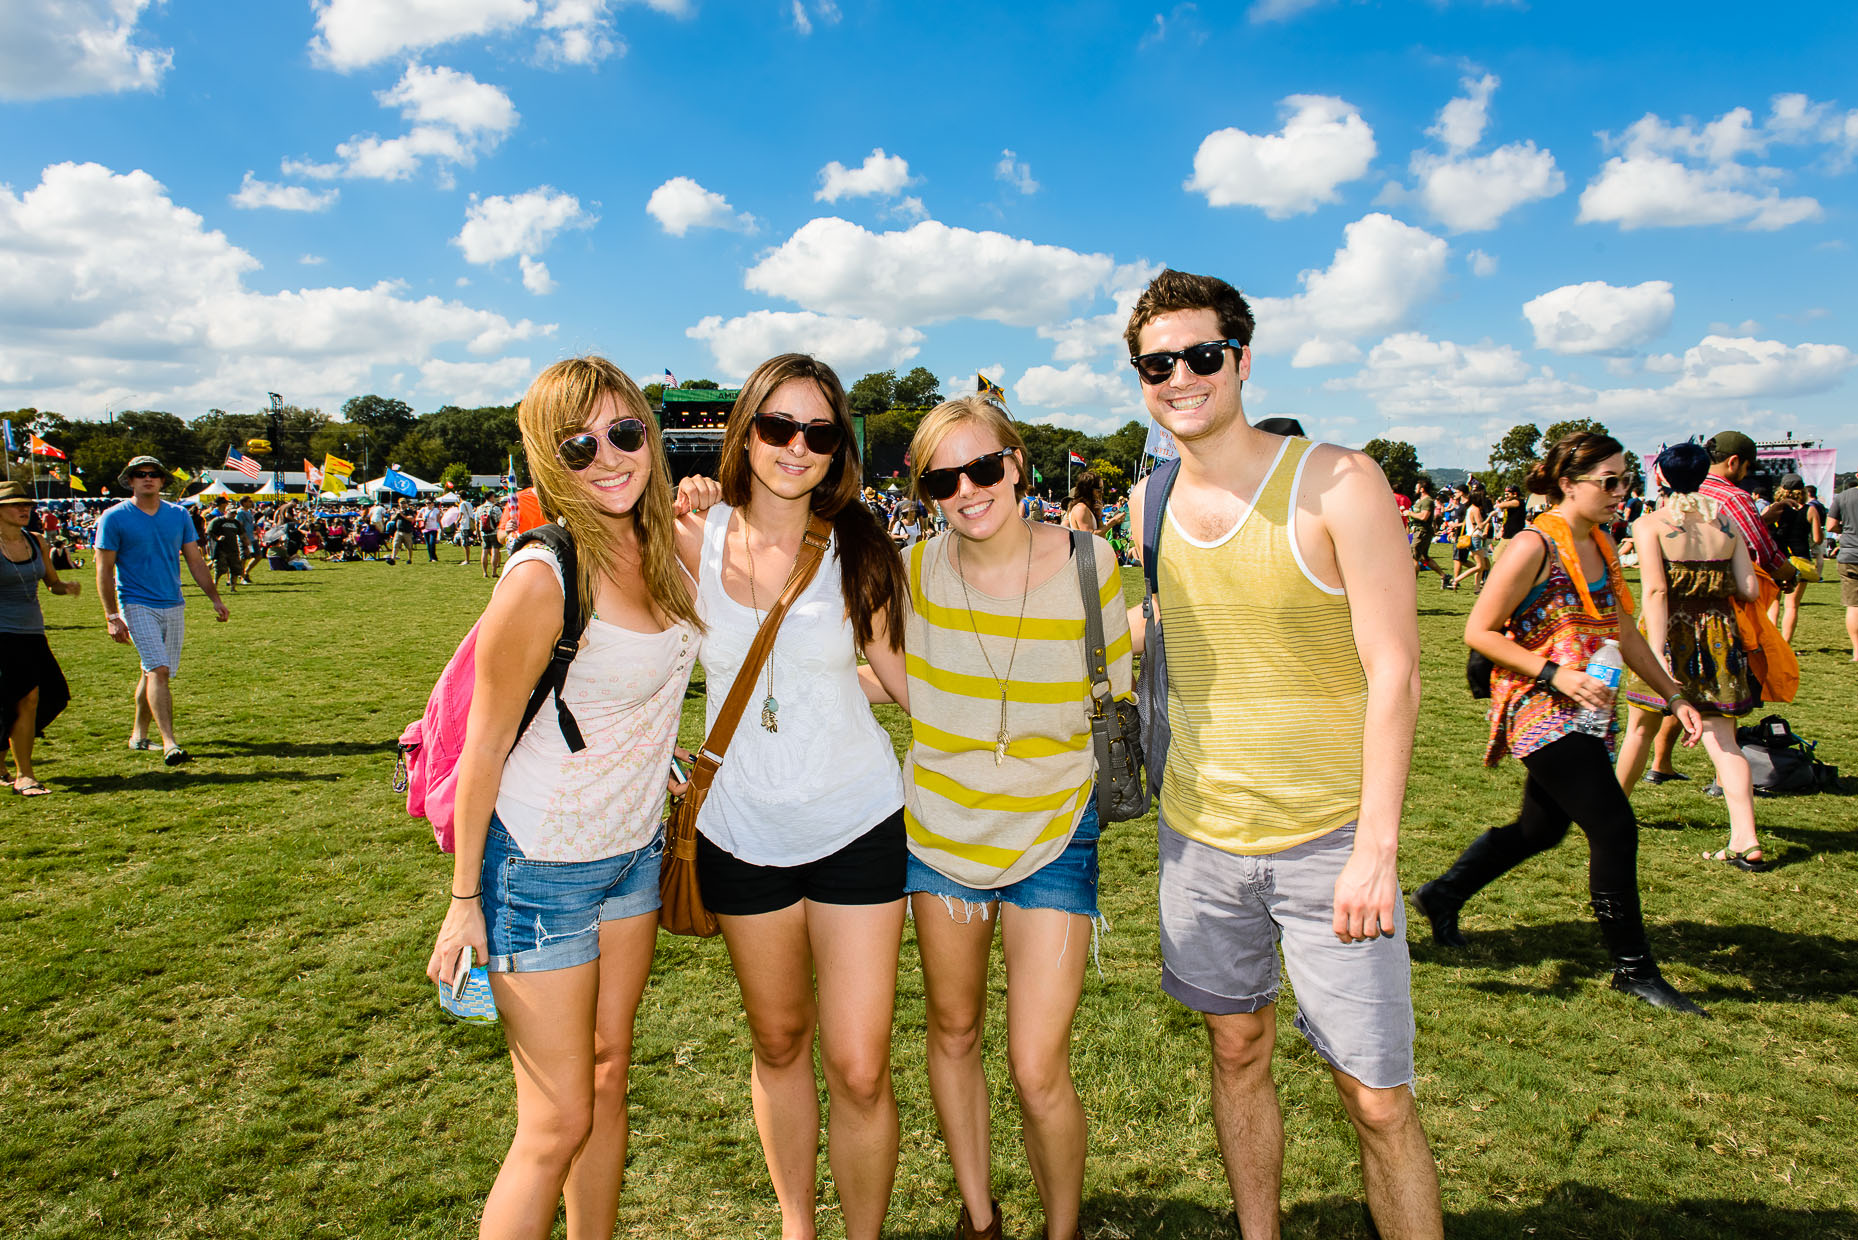 ACL-Austin-City-Limits-Music-Festival-Photographer.jpg